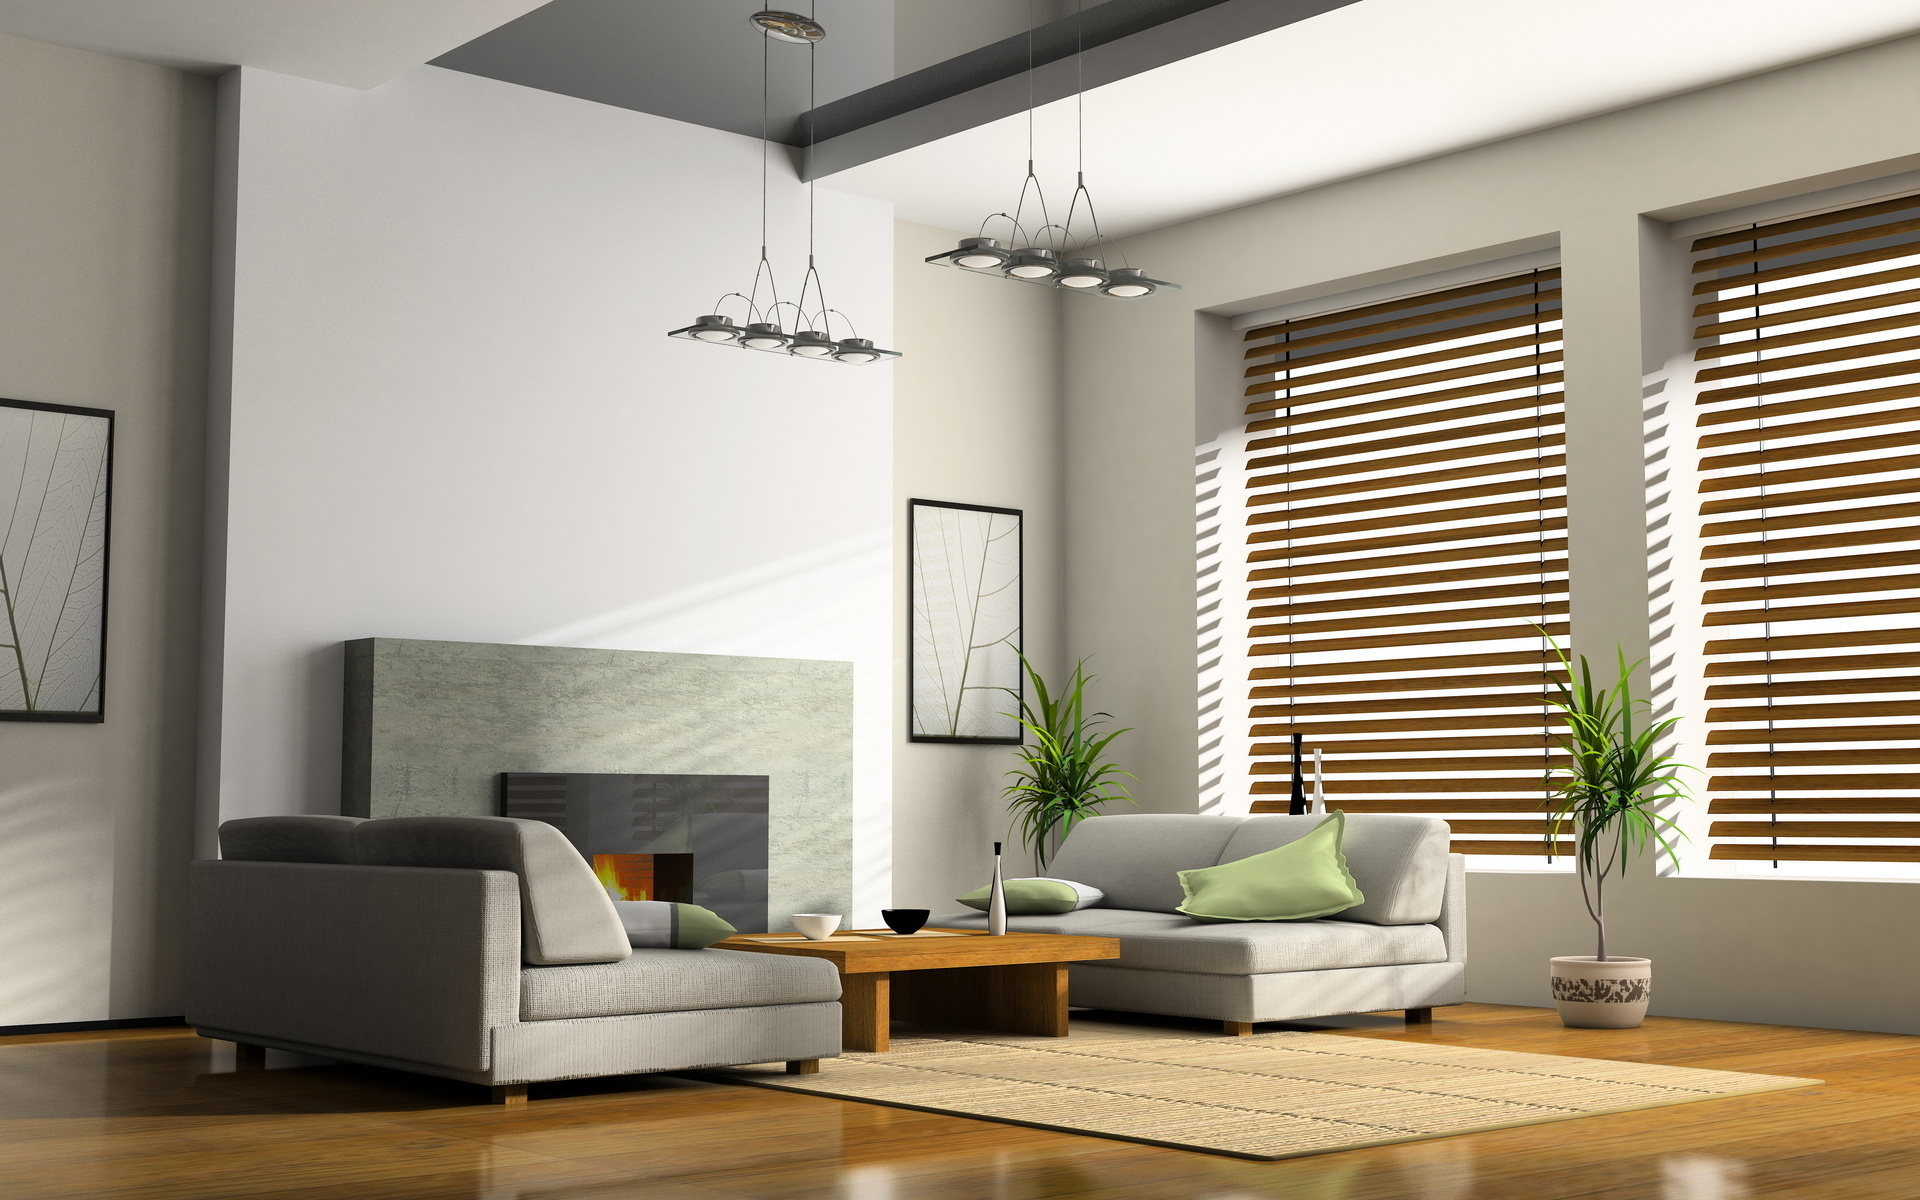 3d interior design desktop wallpaper 60899 1920x1200 px